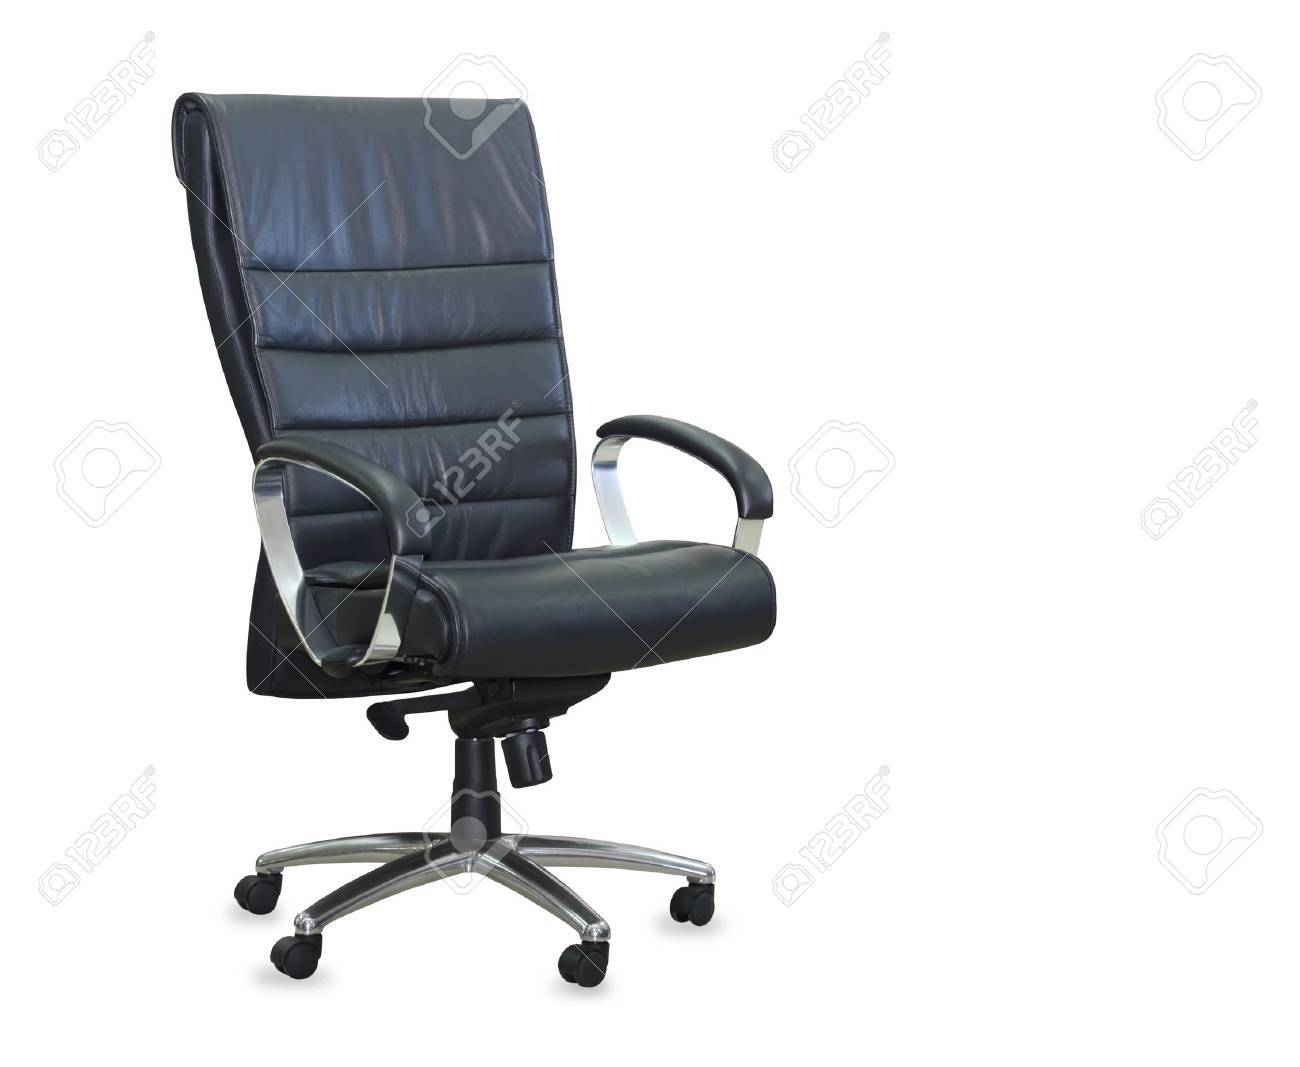 Sensational Modern Office Chair From Black Leather Isolated Home Interior And Landscaping Palasignezvosmurscom